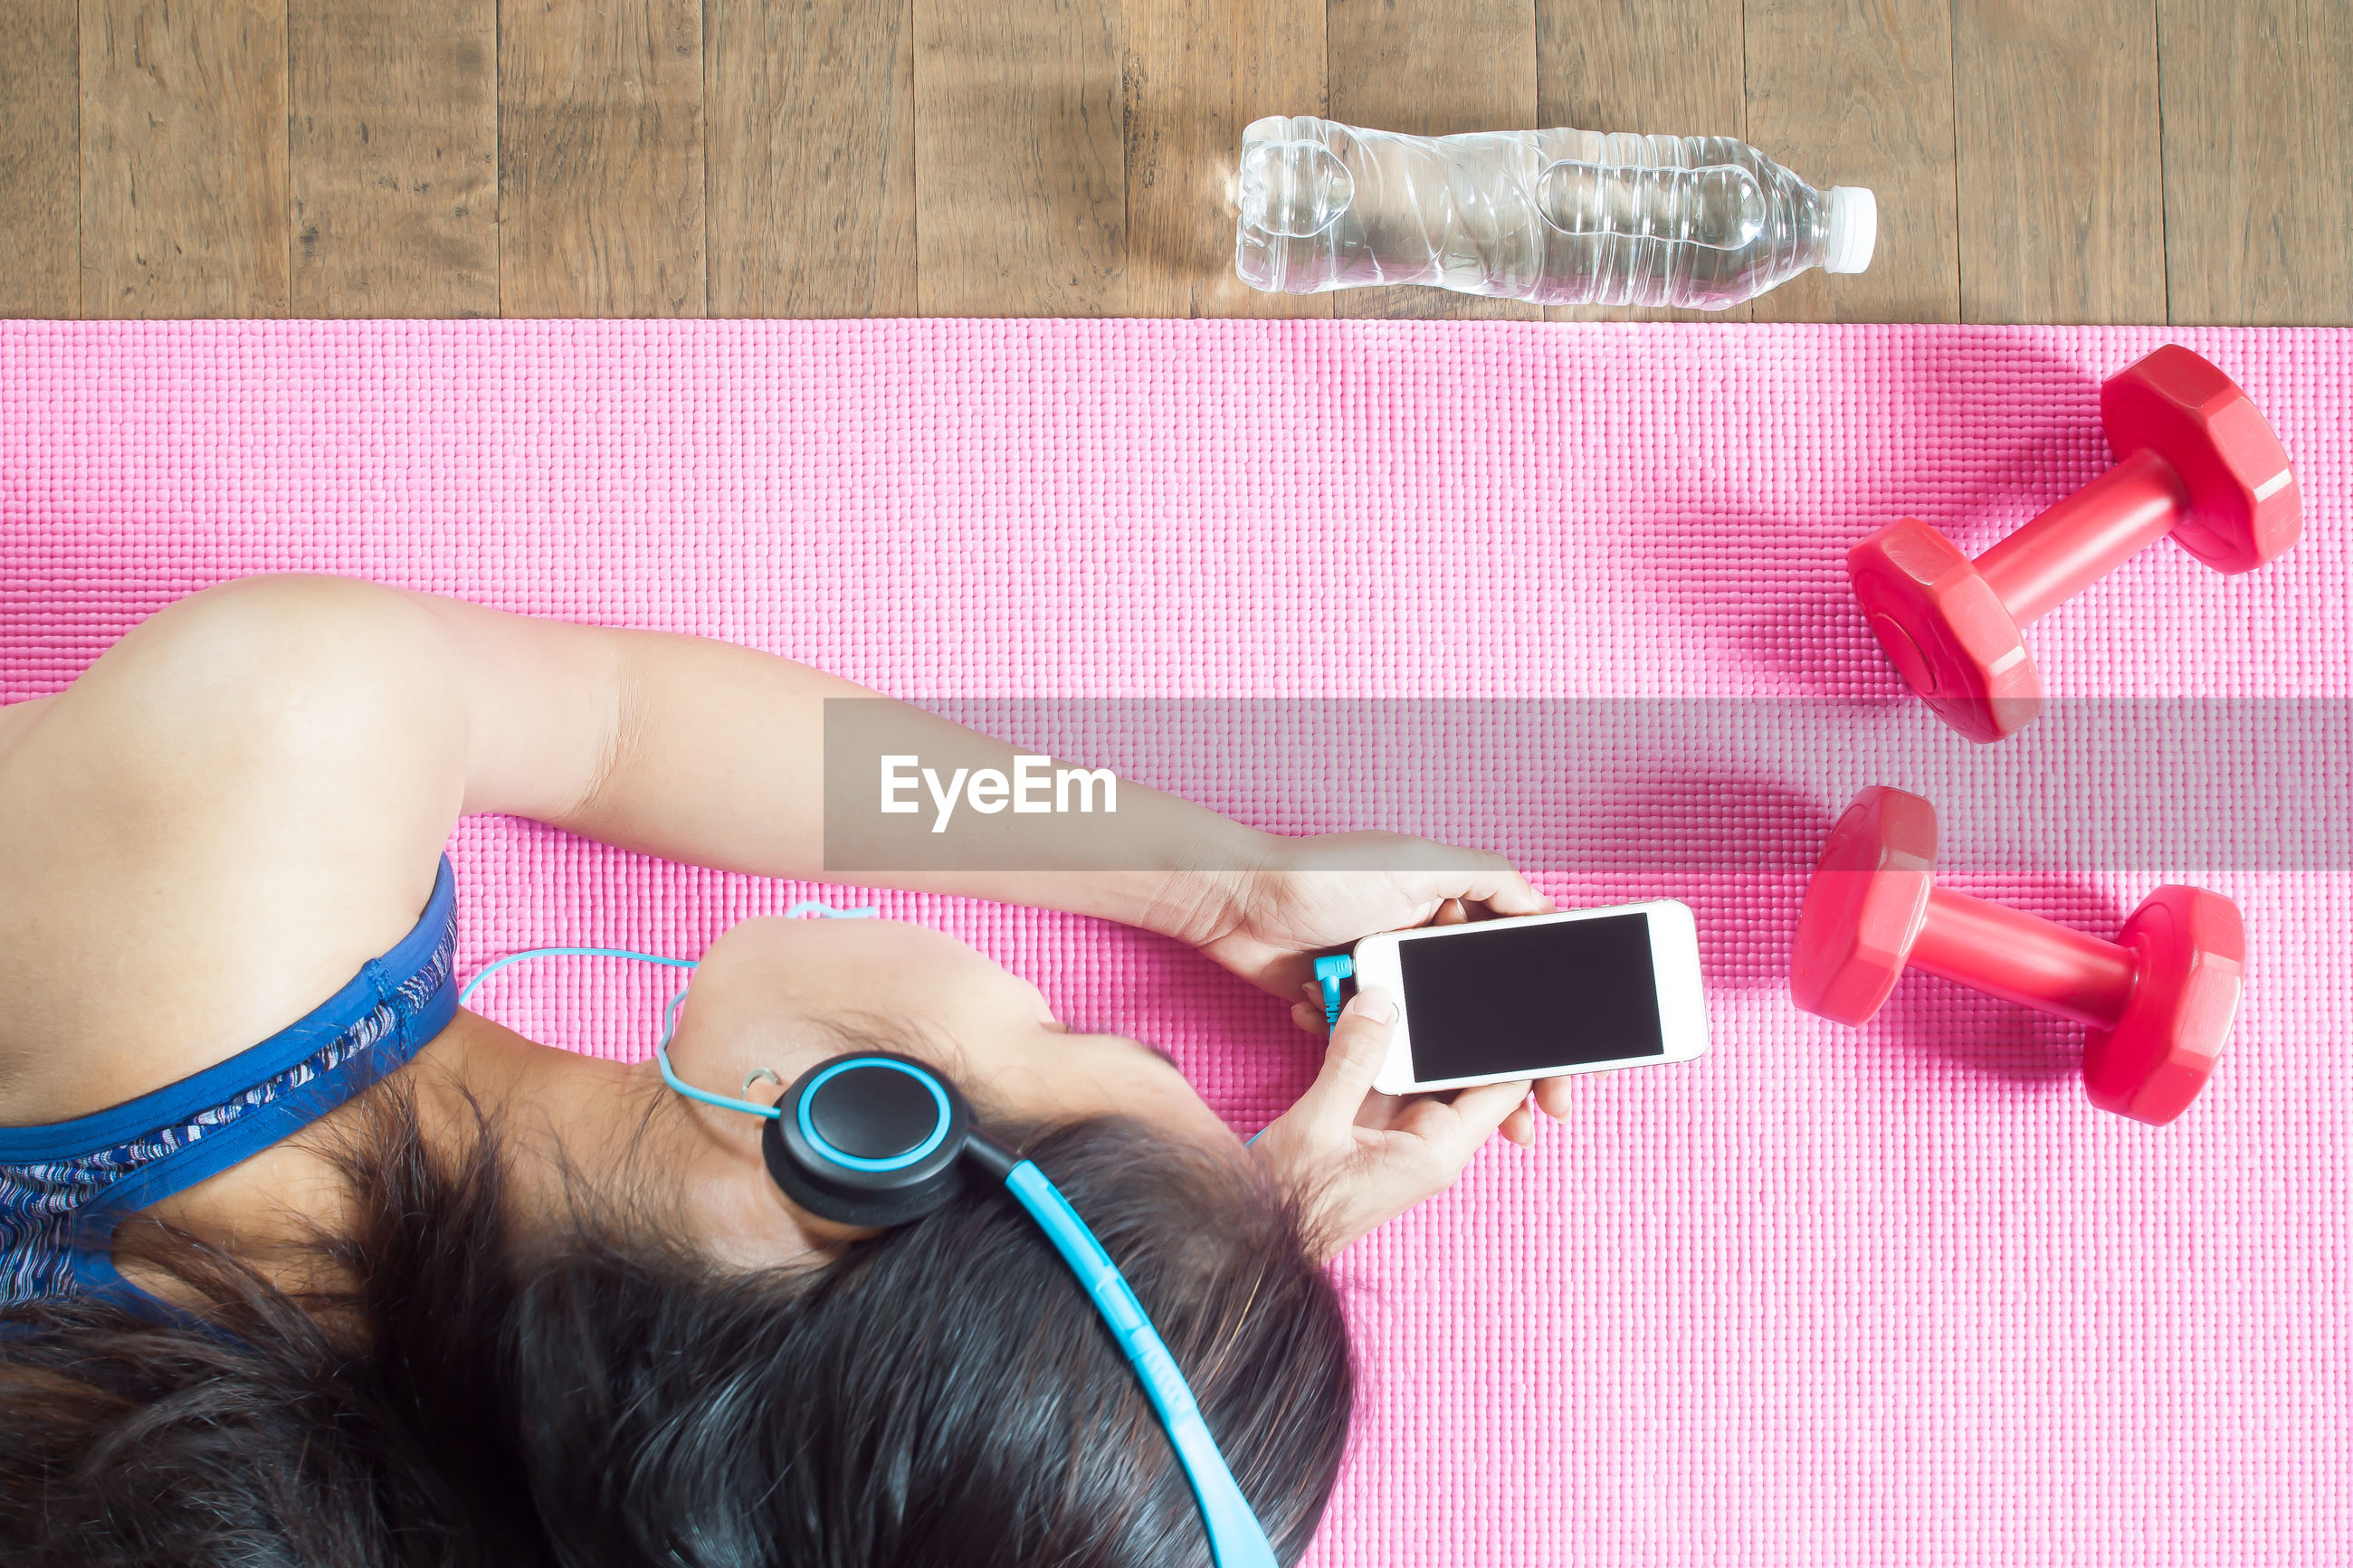 High angle view of woman using mobile phone on exercise mat